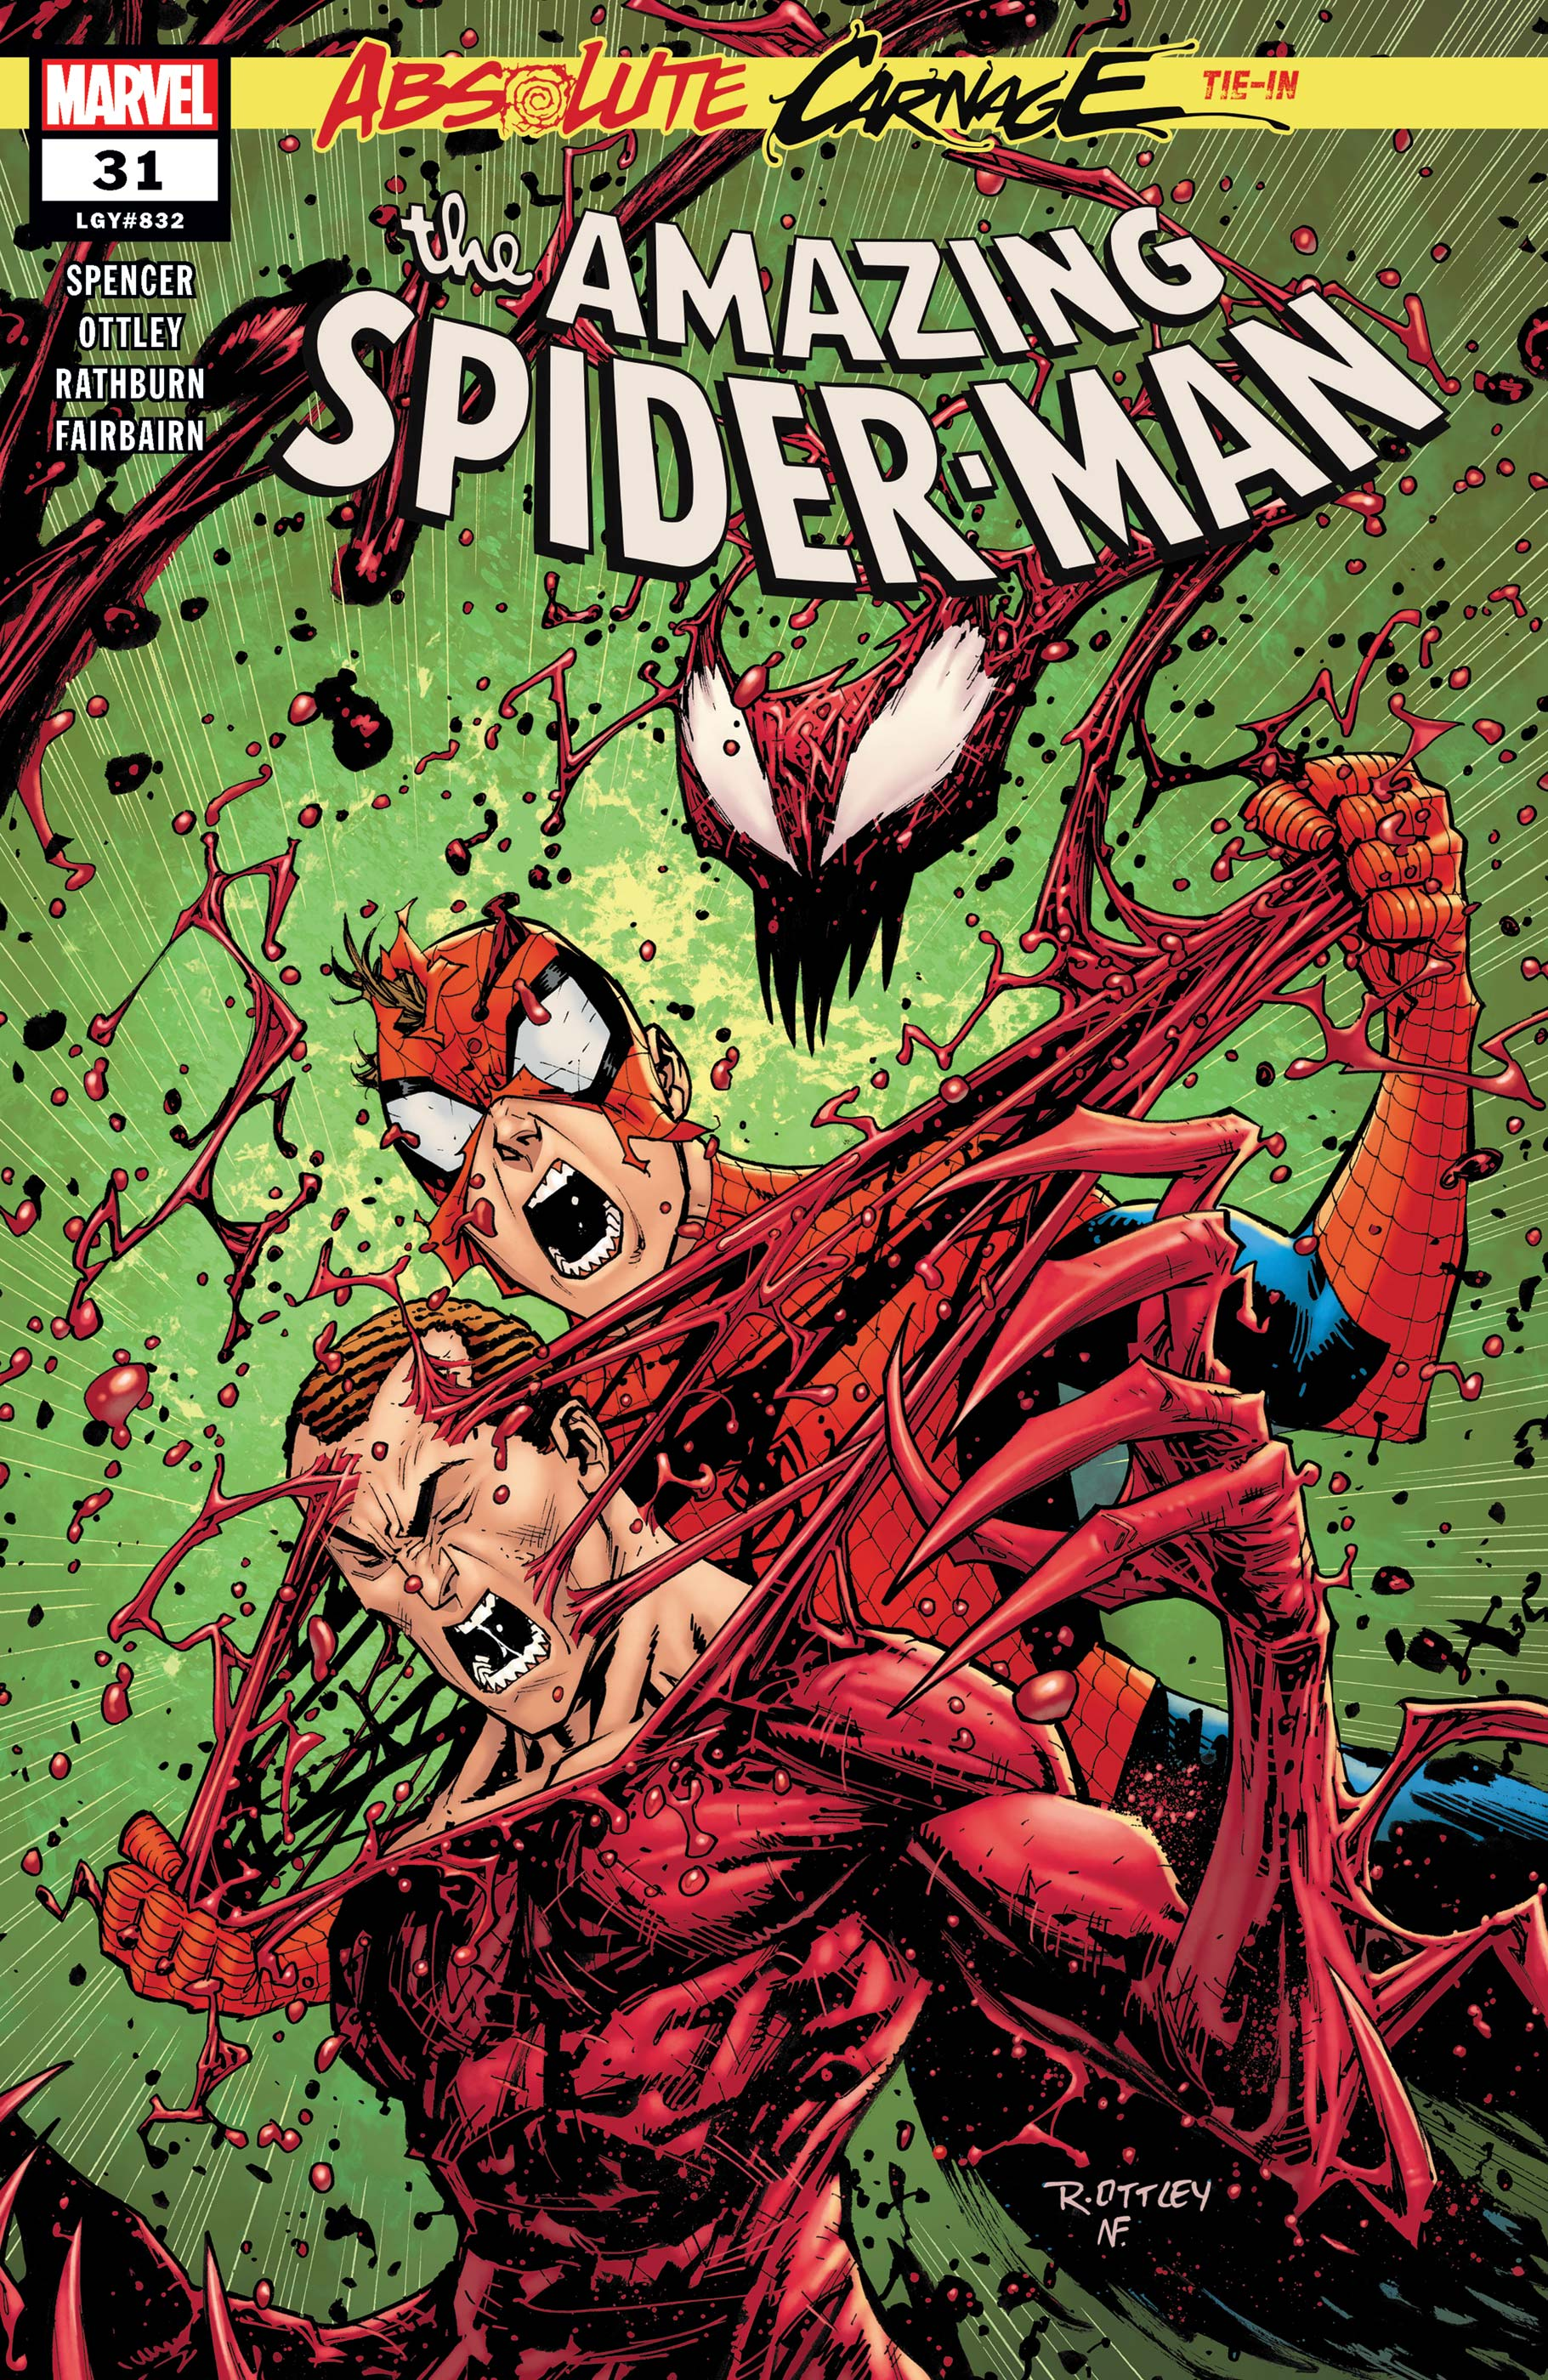 The Amazing Spider-Man (2018) #31